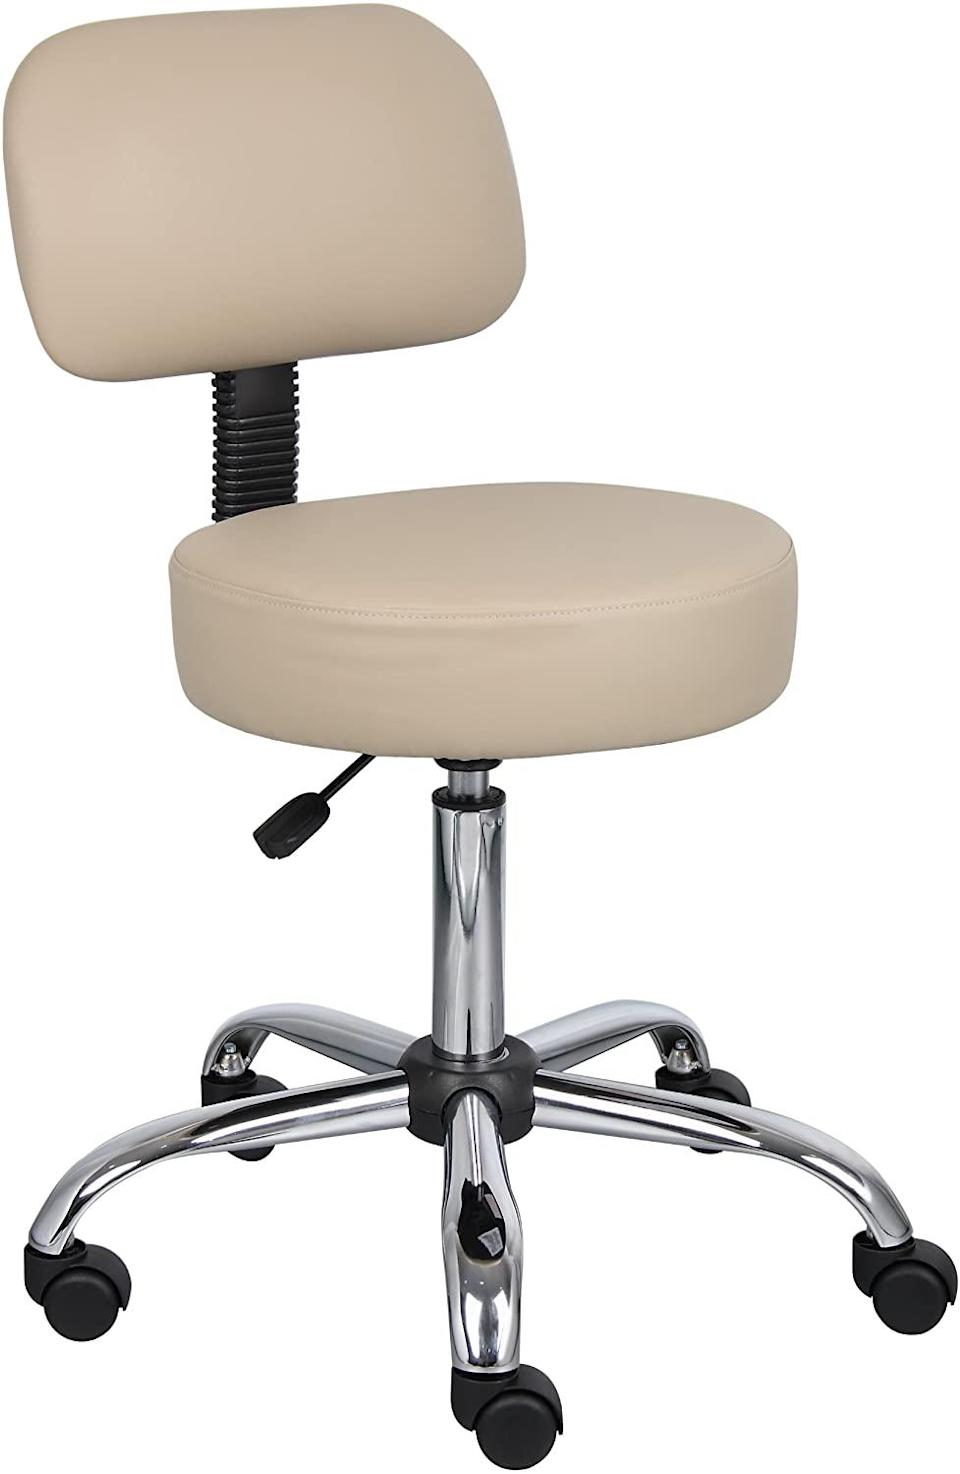 """<h2>Boss Office Products Be Well Medical Spa Stool With Back</h2><br><strong>Best For: Spine Alignment</strong><br>For firmer support that comes tattoo-artist approved, this stool-style wheely chair is your WFH savior — its upright design mimics the natural shape of your spine for increased comfort. <br><br><strong>The Hype:</strong> 4.7 out of 5 stars and 7,007 reviews on <a href=""""https://amzn.to/35lYvnb"""" rel=""""nofollow noopener"""" target=""""_blank"""" data-ylk=""""slk:Amazon"""" class=""""link rapid-noclick-resp"""">Amazon</a><br><br><strong>Comfy Butts Say: </strong>""""I'm a tattoo artist, so I spend all day sitting in these types of chairs. I was looking for something fairly inexpensive but comfortable and sturdy. Most tattoo chairs run from $150-300 dollars — bought this one for $55 bucks and it's perfect for what I do. Comfortable large seat. Nice back support. Glad I found this on here. Good price.""""<br><br><strong>Boss Office Products</strong> Be Well Medical Spa Stool with Back, $, available at <a href=""""https://amzn.to/2yfBg1O"""" rel=""""nofollow noopener"""" target=""""_blank"""" data-ylk=""""slk:Amazon"""" class=""""link rapid-noclick-resp"""">Amazon</a>"""